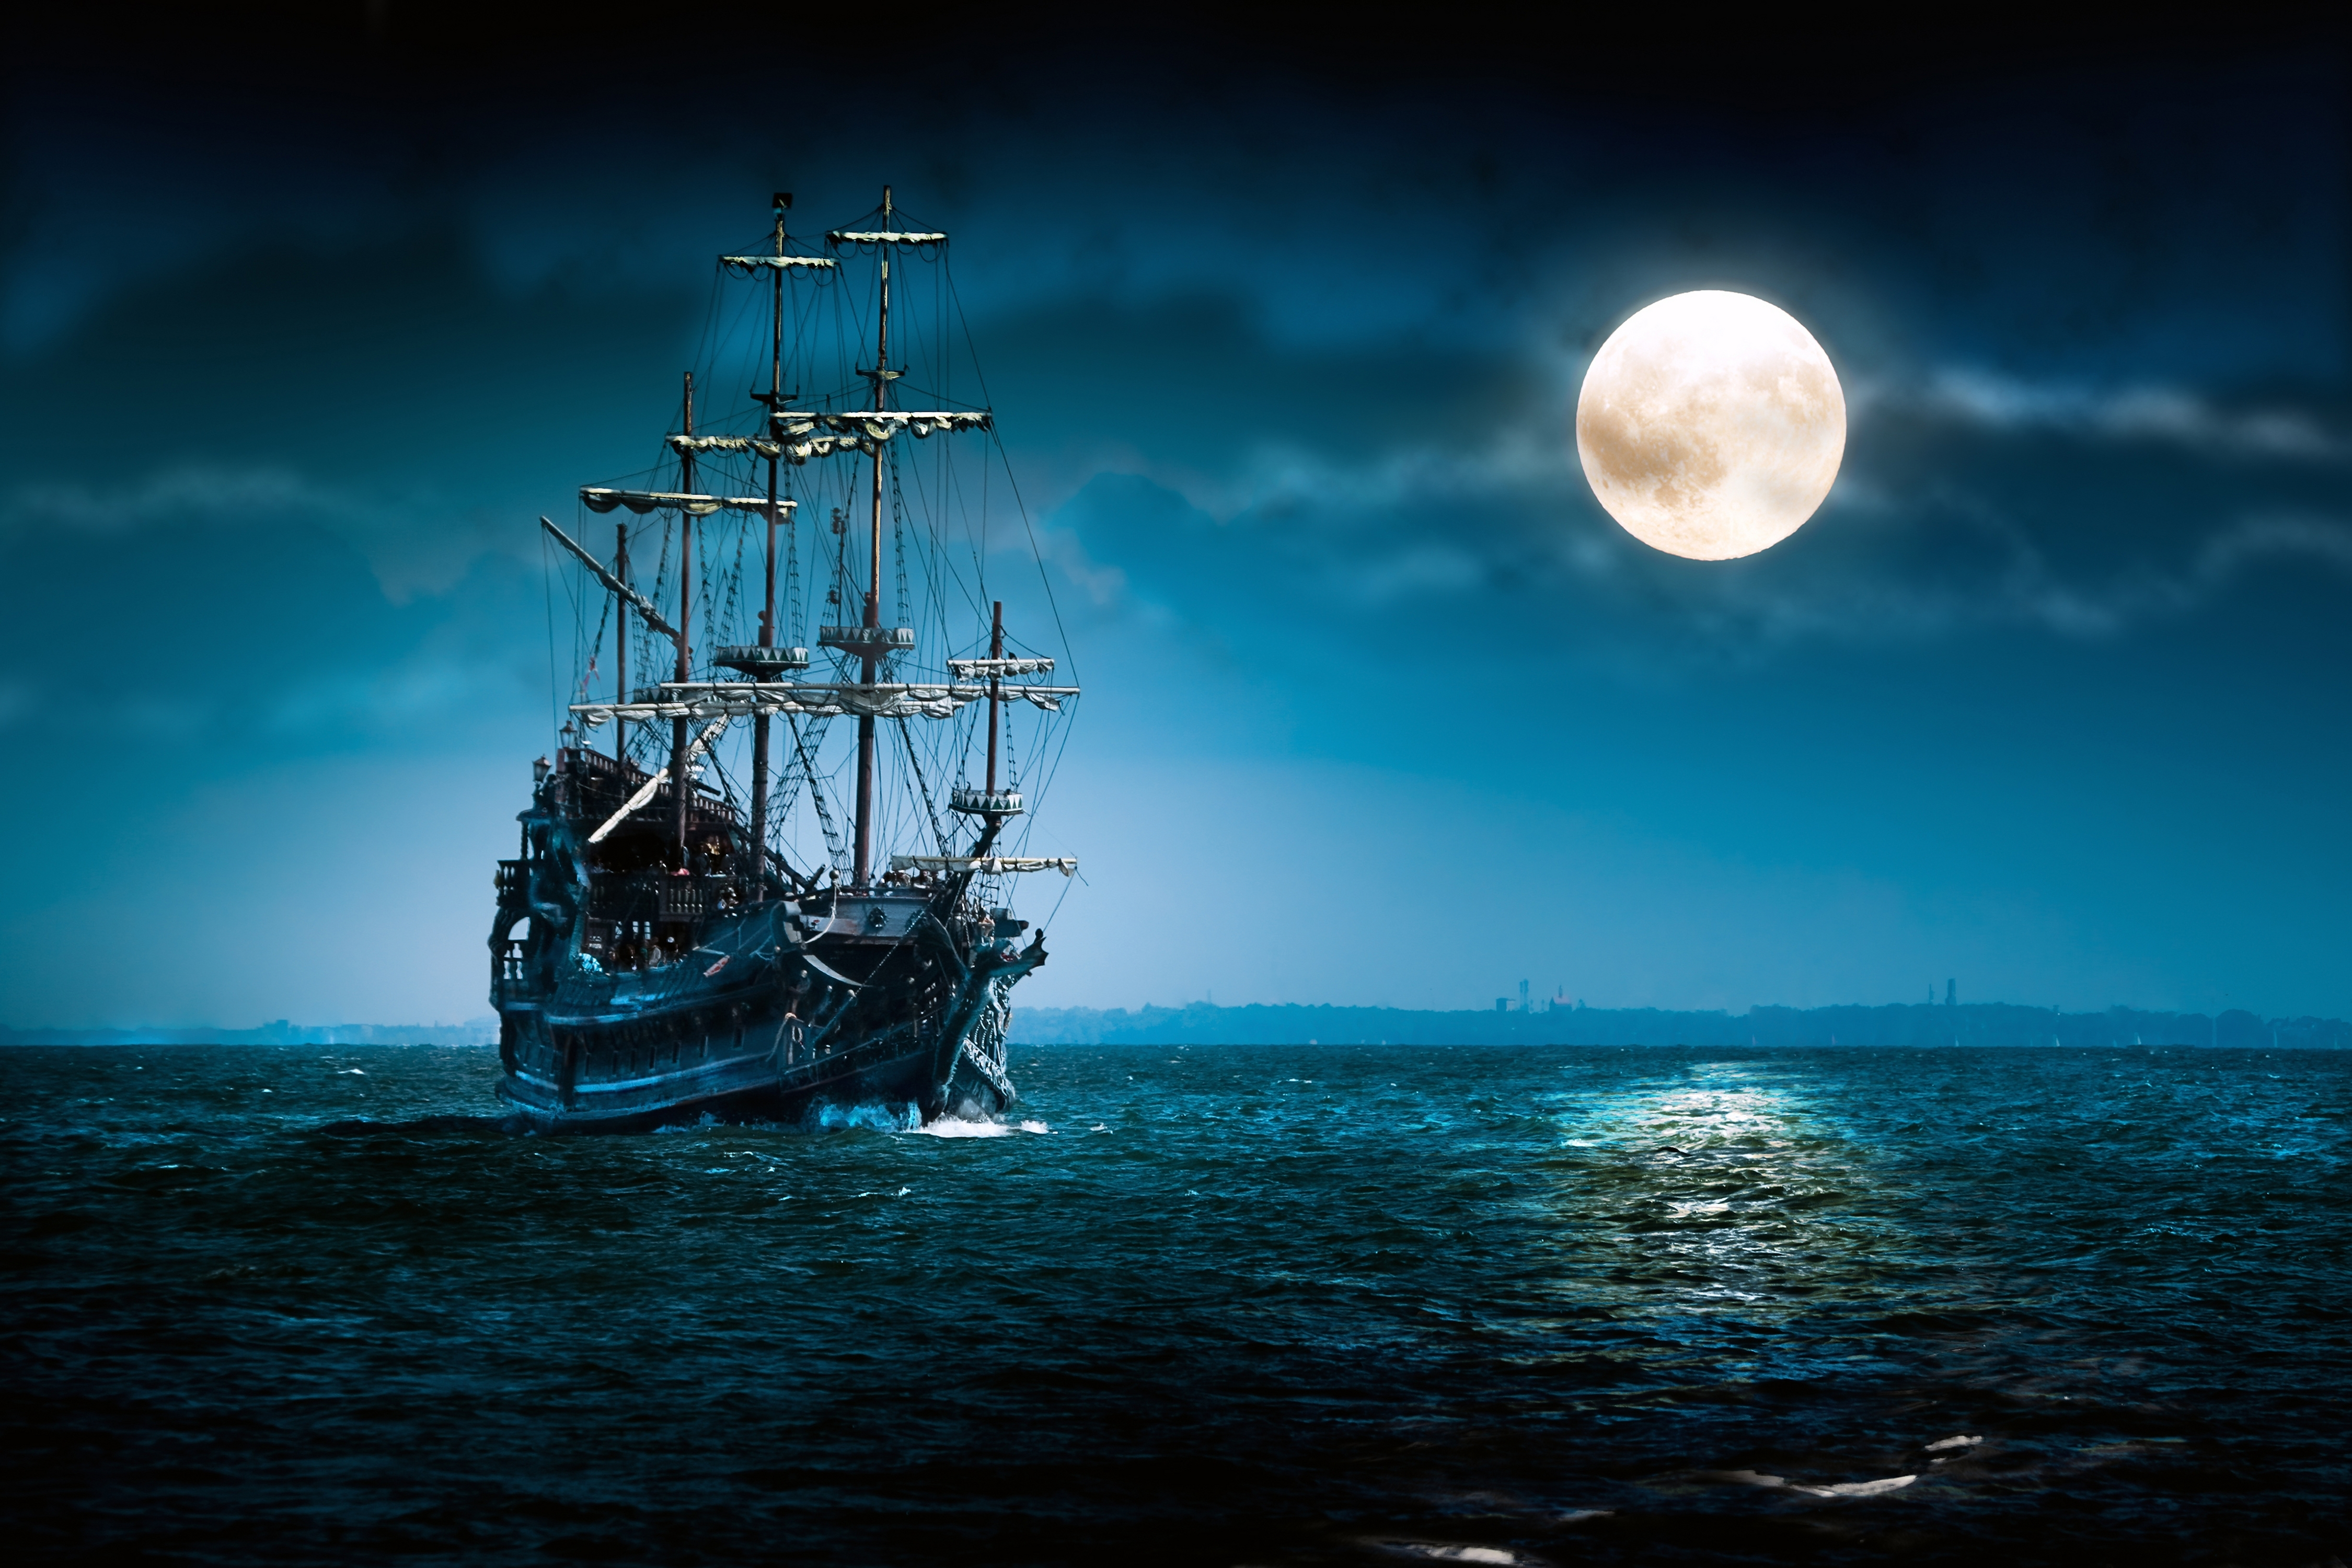 273 ship hd wallpapers   background images - wallpaper abyss